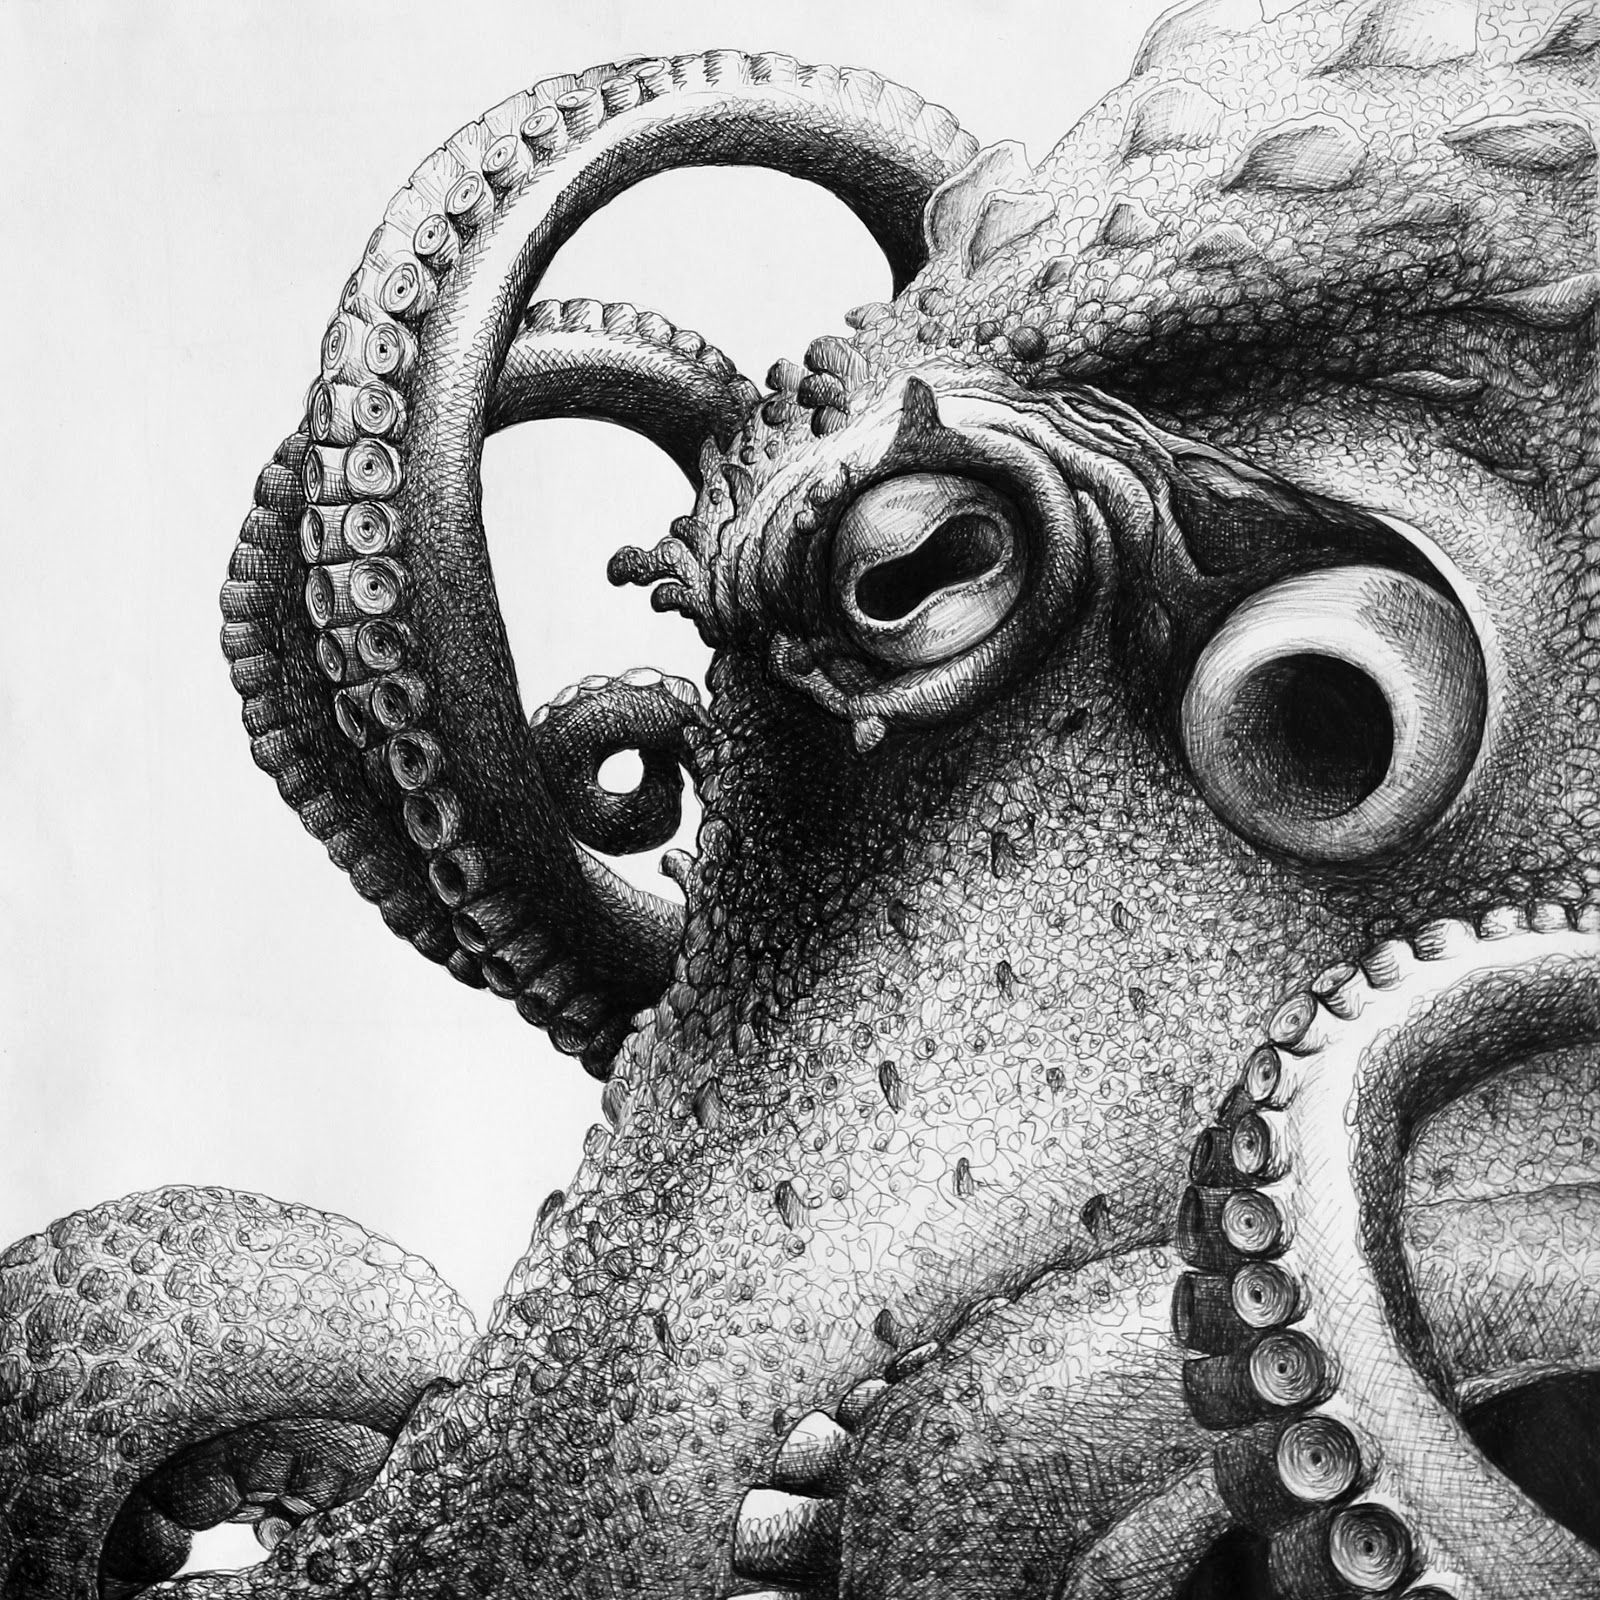 realistic octopus drawing octopus tattoo drawing at paintingvalleycom explore realistic octopus drawing